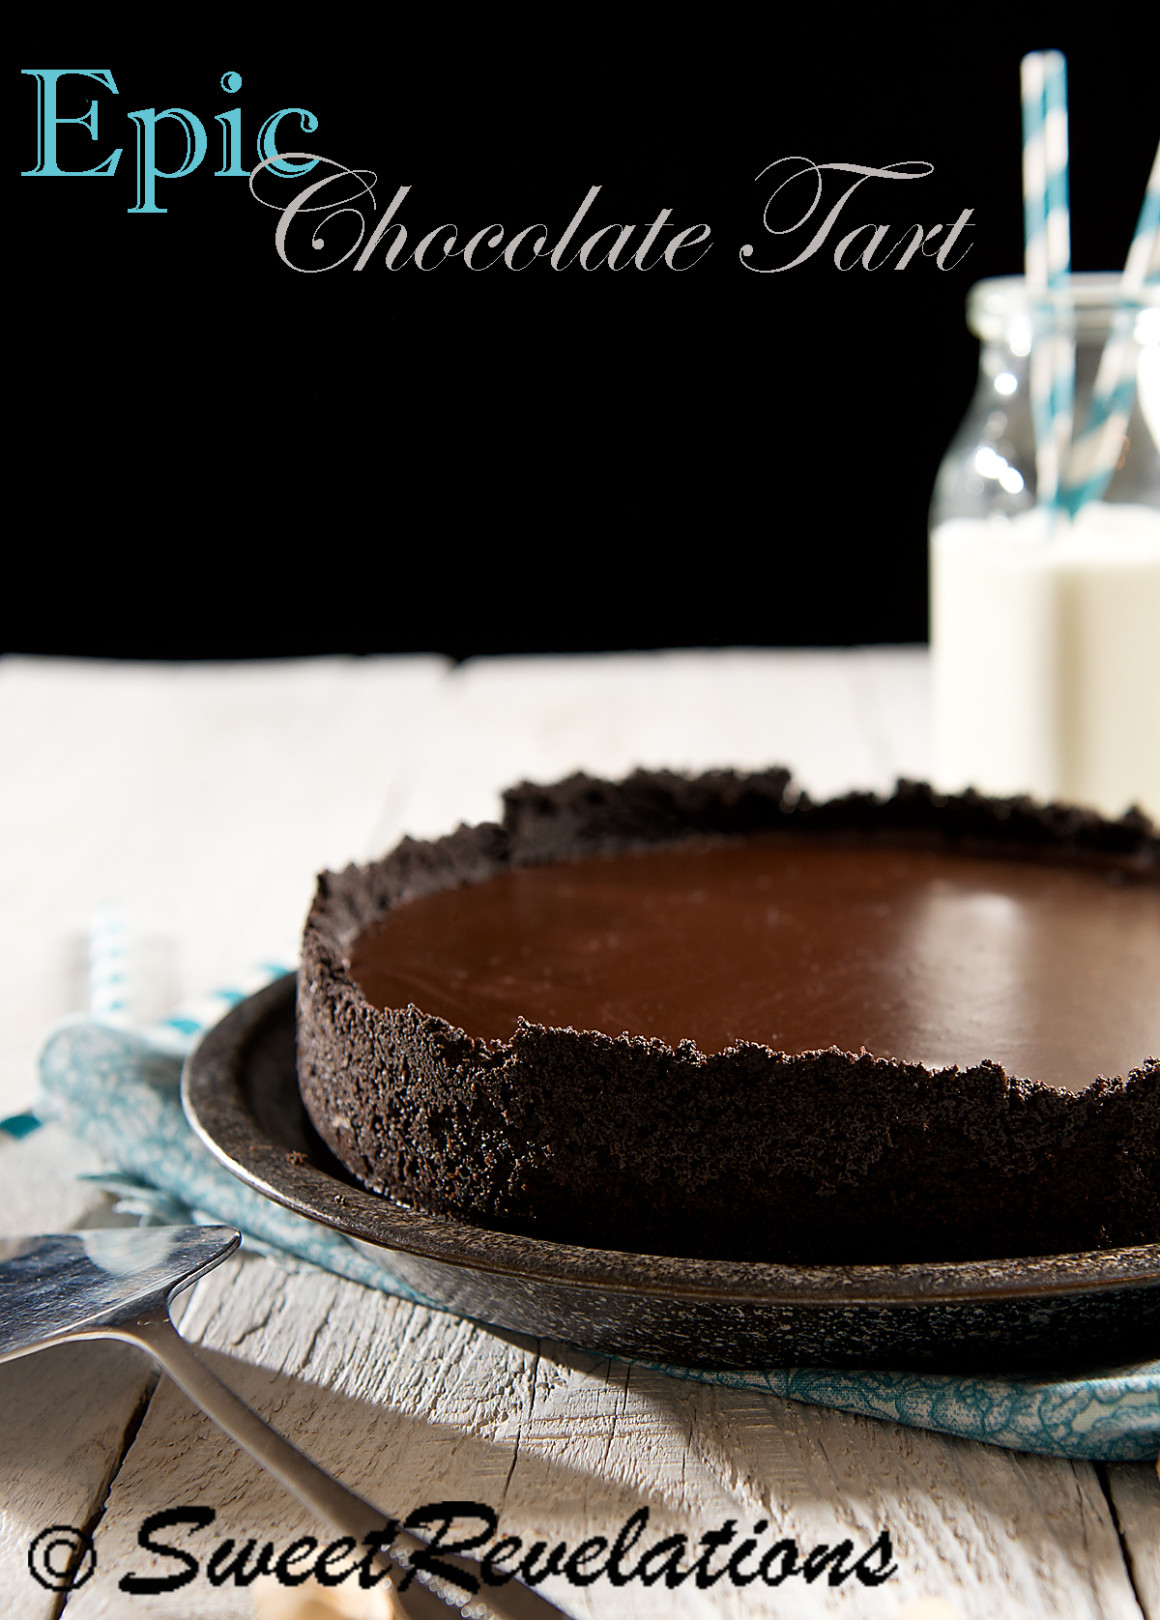 Epic Chocolate Tart Recipe from Sweet Revelations